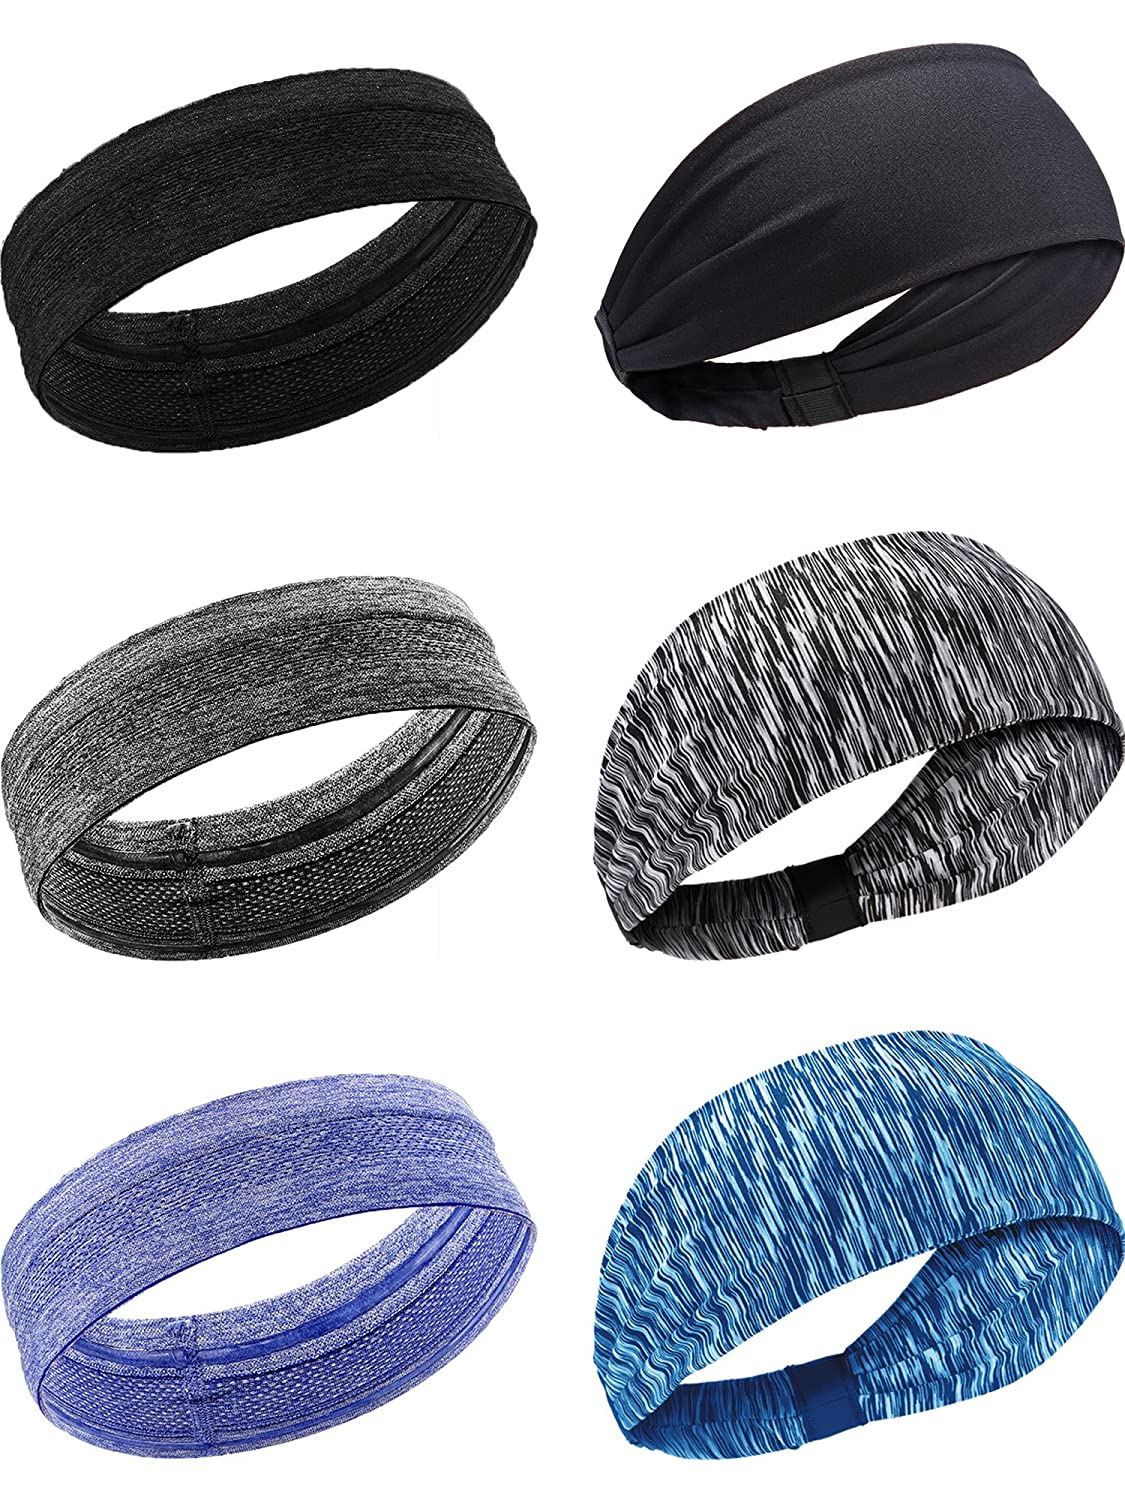 41f7853ee79c Bememo 6 Pieces 2 Styles Sports Headbands Non Slip Elastic Sweatband  Athletic Head Wear for Men and Women